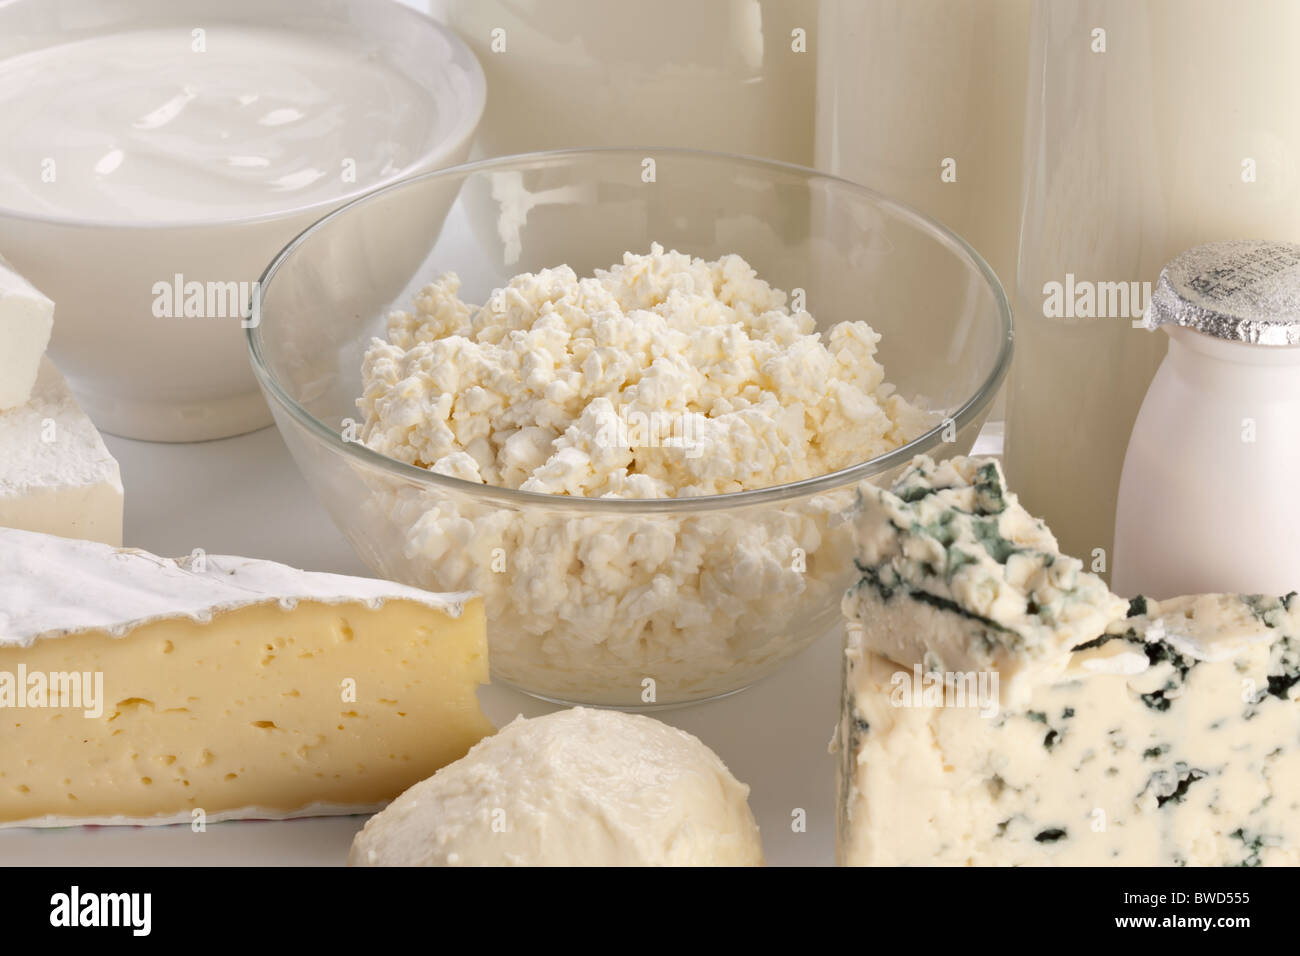 Different milk products: cheese; cream; milk. On a white background. - Stock Image